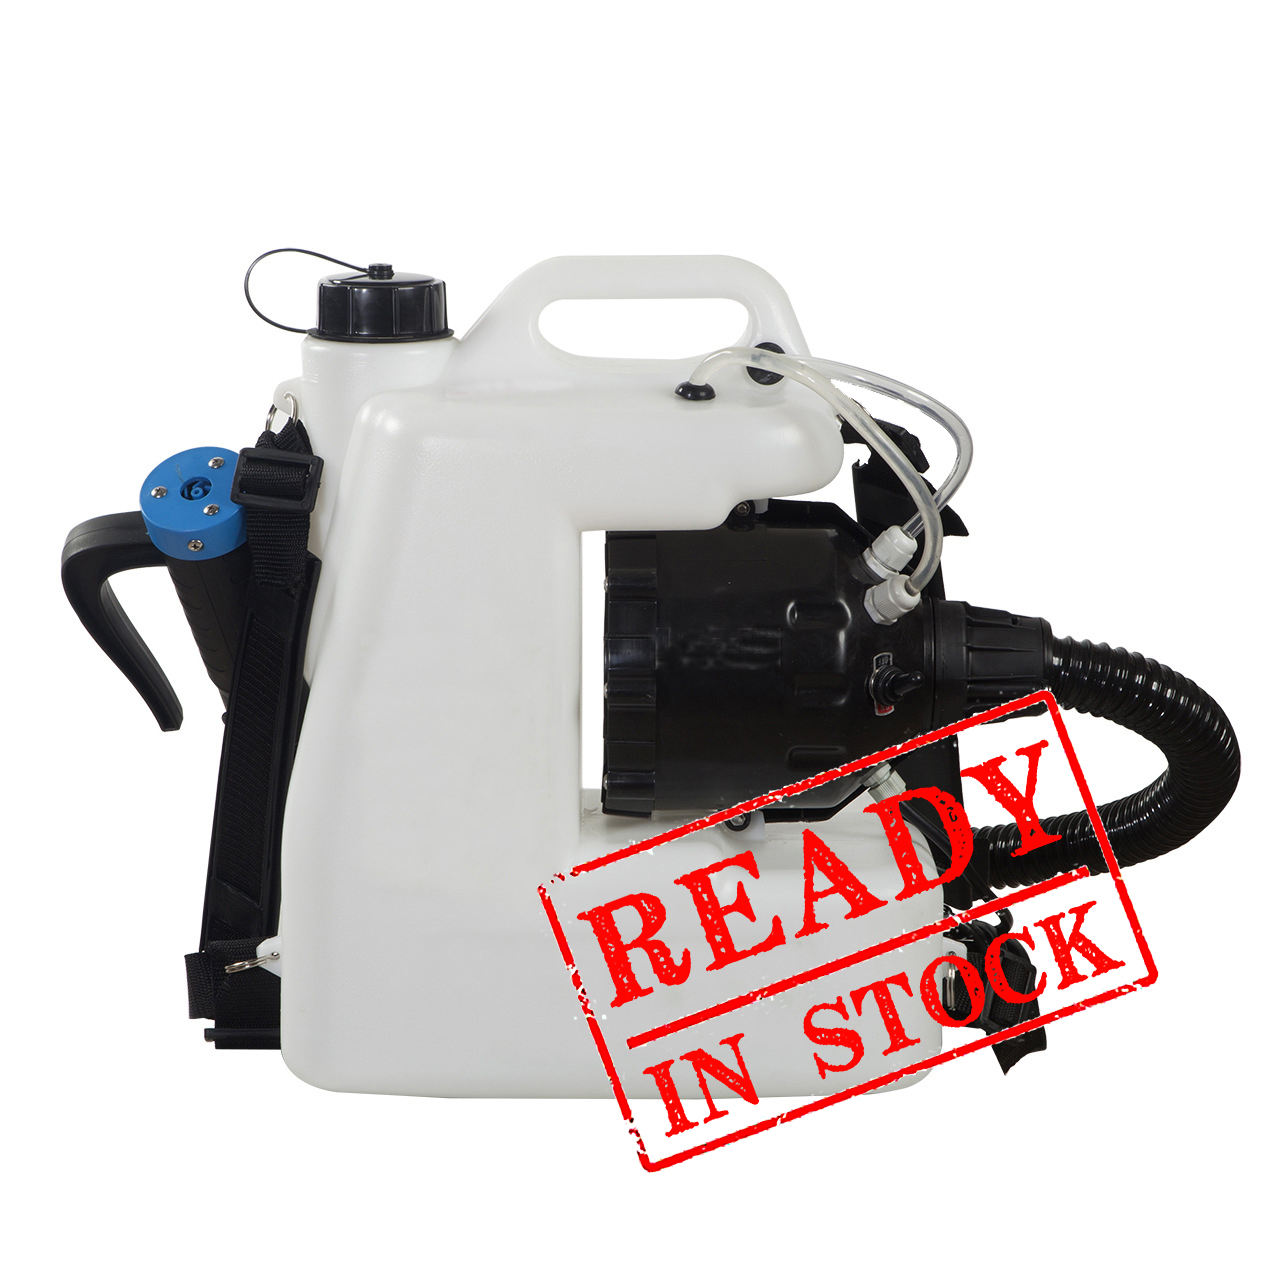 ULV005 Backpack Electric Sprayer 12L Fog Machine 110V/220V ULV Fogger for Home and Office Disinfection